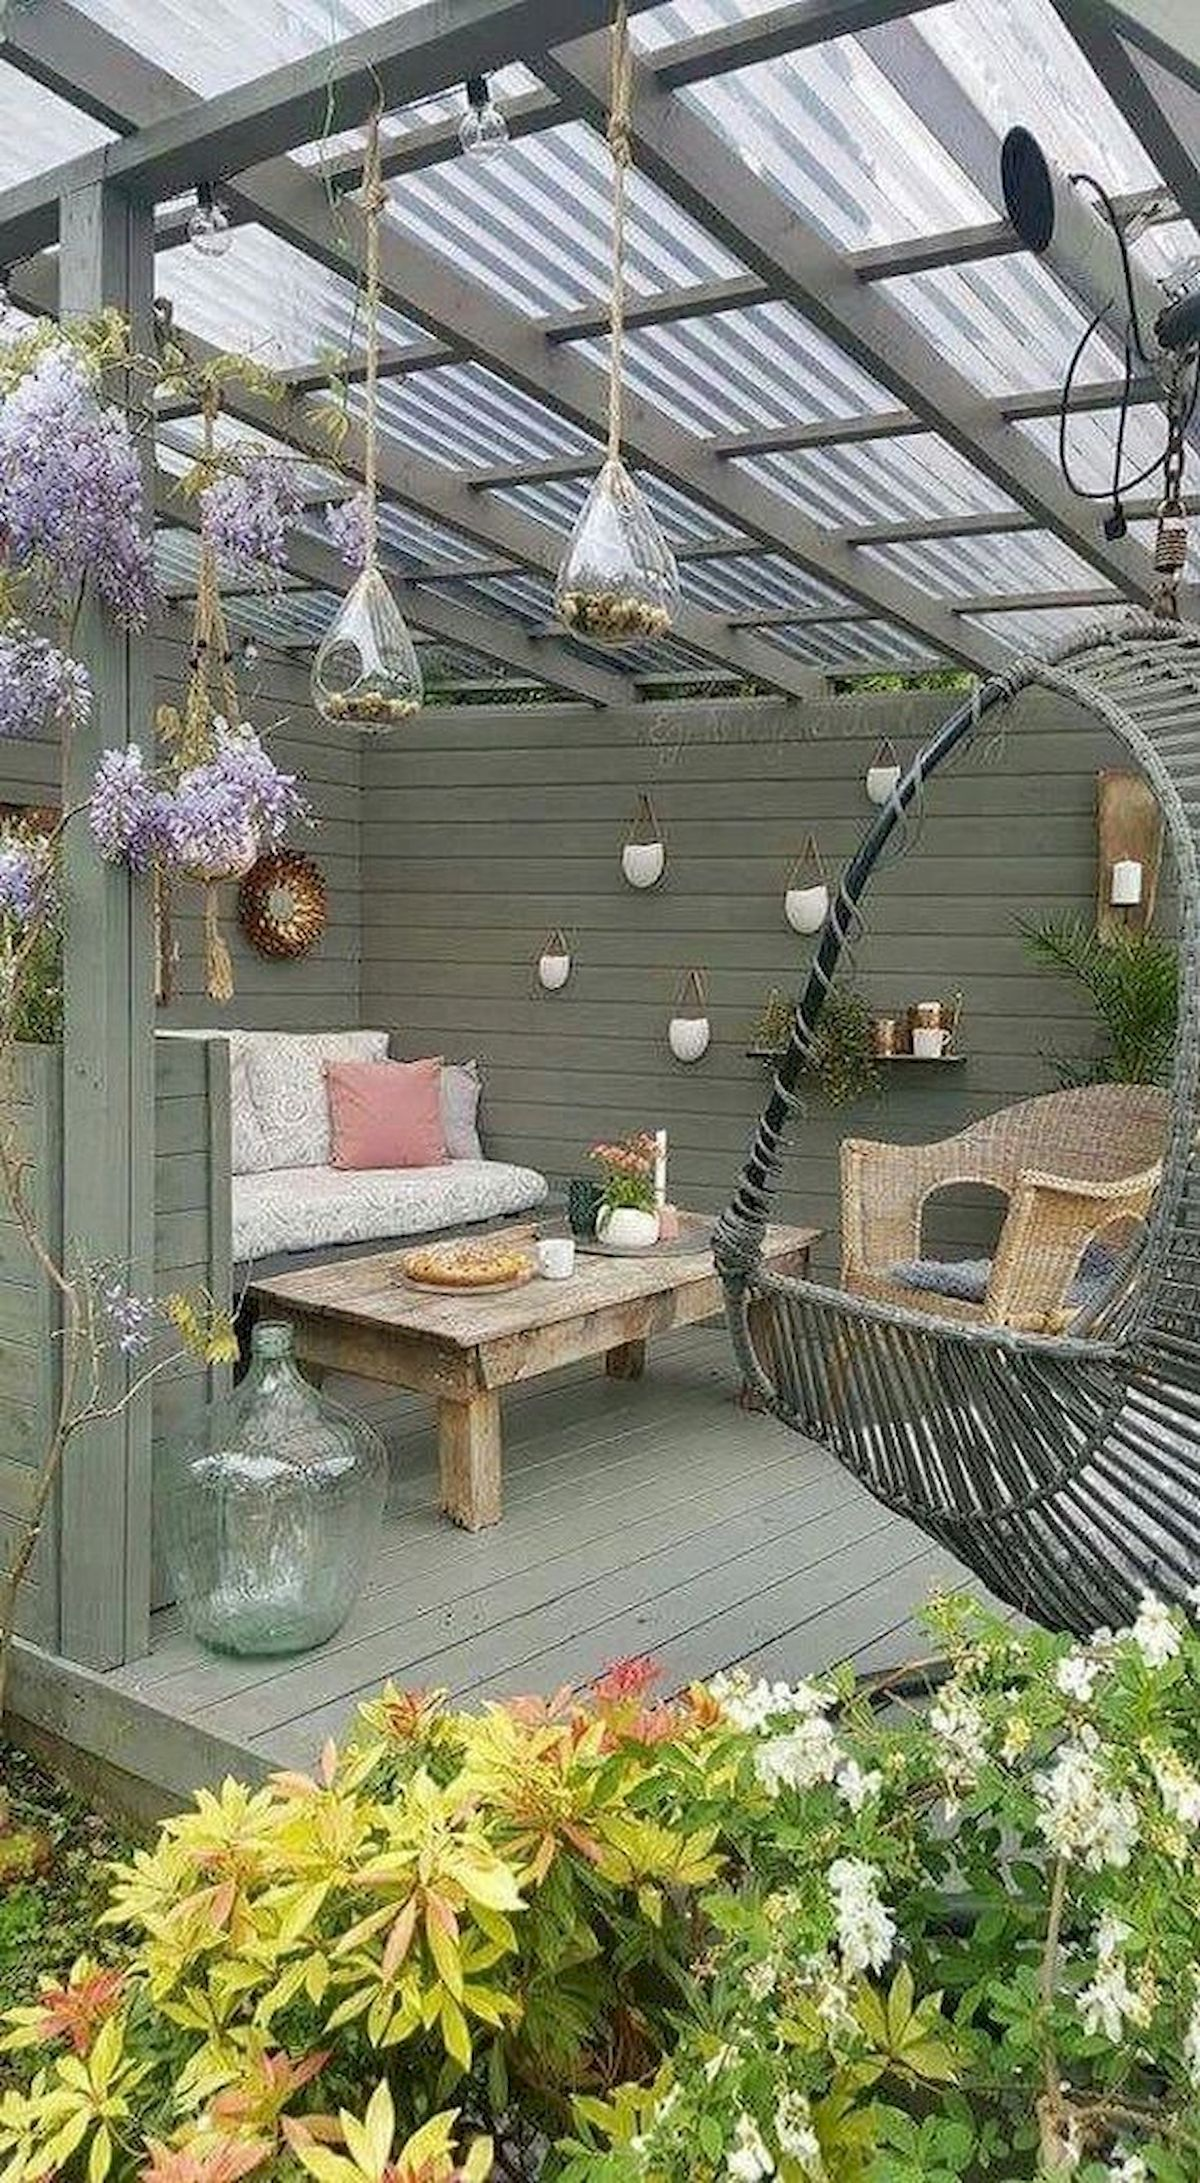 50 Best DIY Backyard Patio and Decking Design Ideas (33)